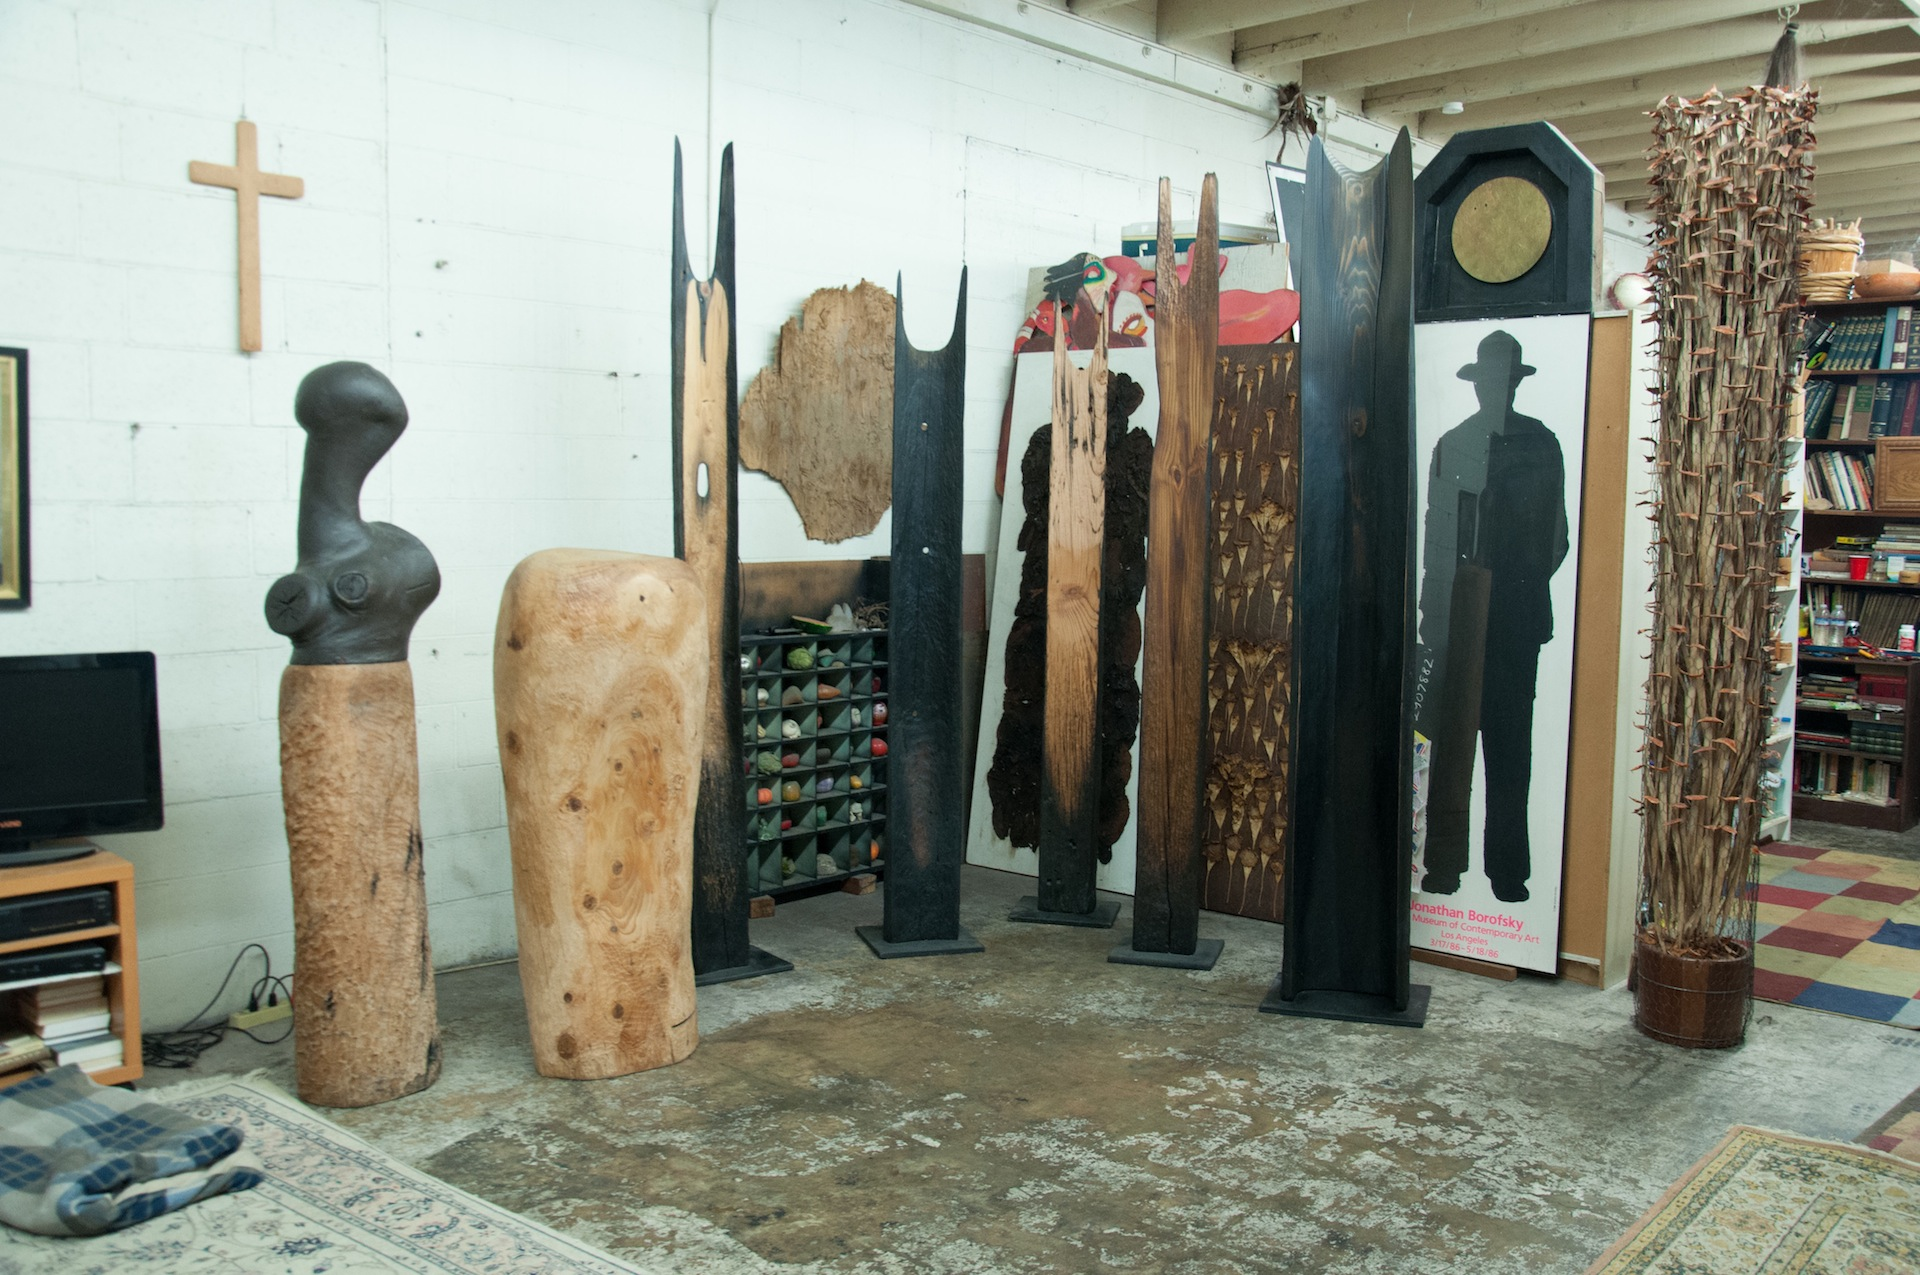 Shiokava Sculptures in Compton studio